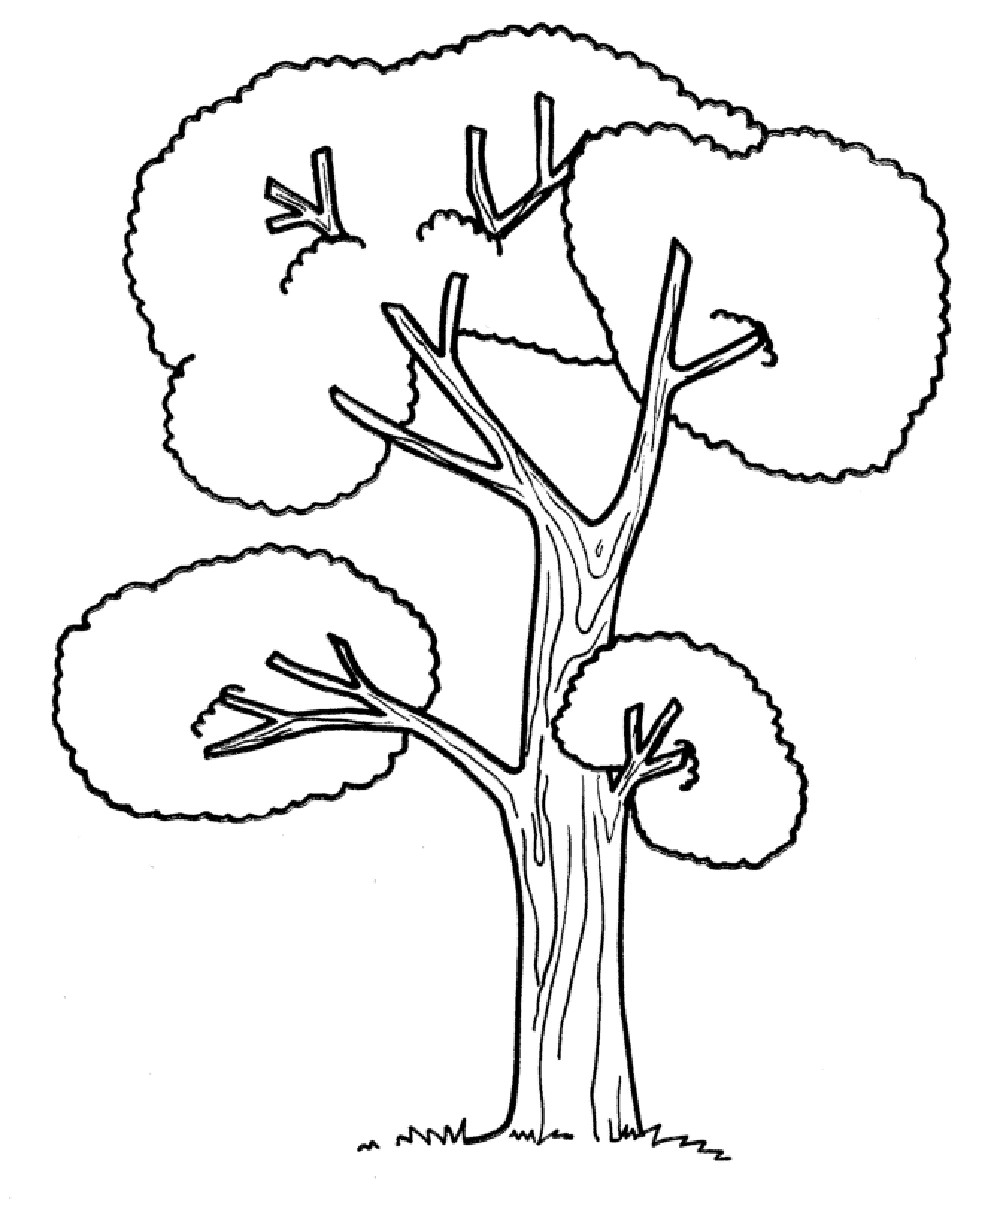 Preschool Coloring Pages Trees Copy Tall Tree Trees Coloring Pages Download Of Apple Tree Coloring Page with Coloring Pages Apple orchard Download Download